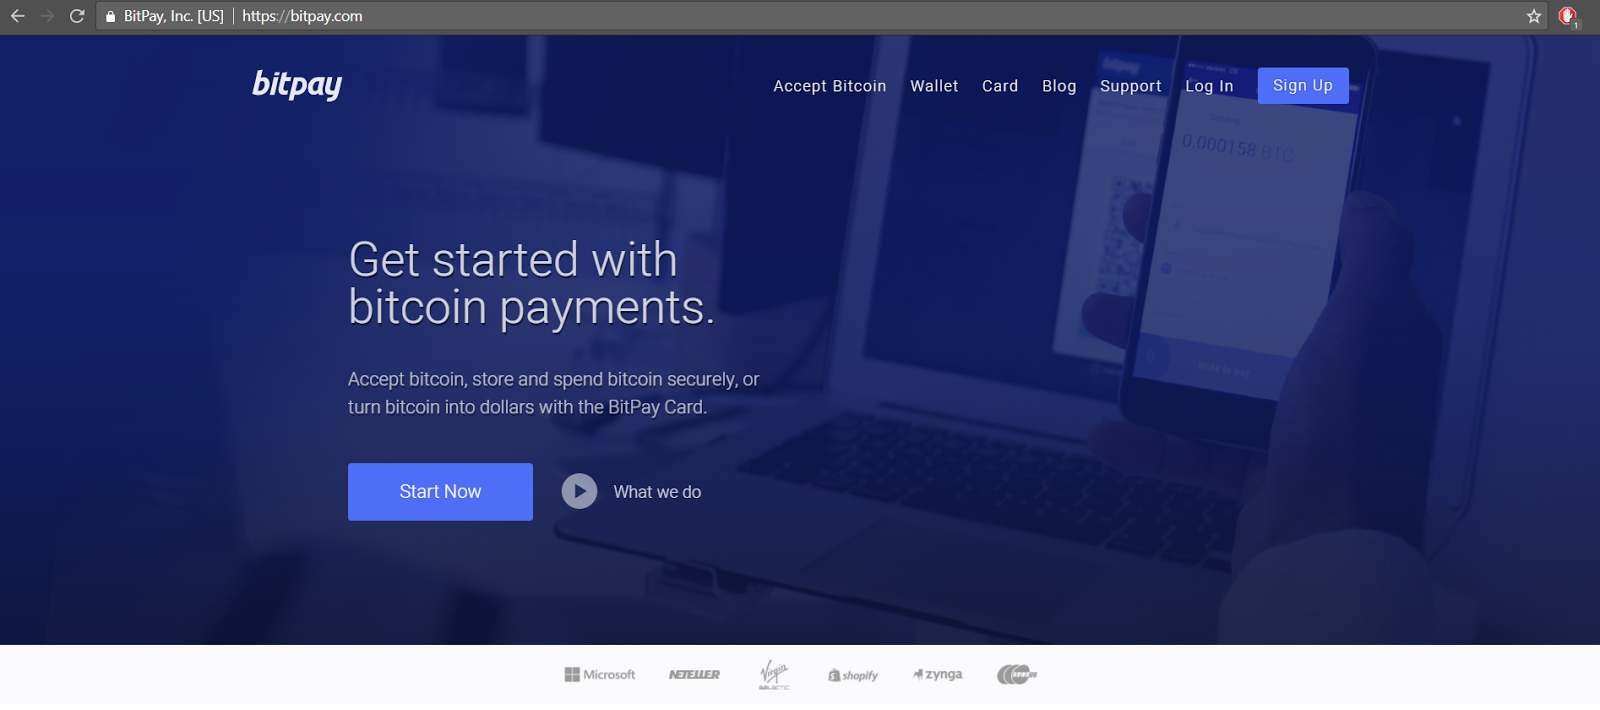 Accept Bitcoin Payment via BitPay,pay with bitcoin,accept bitcoin,bitcoin payment gateway,sites that accept bitcoin,